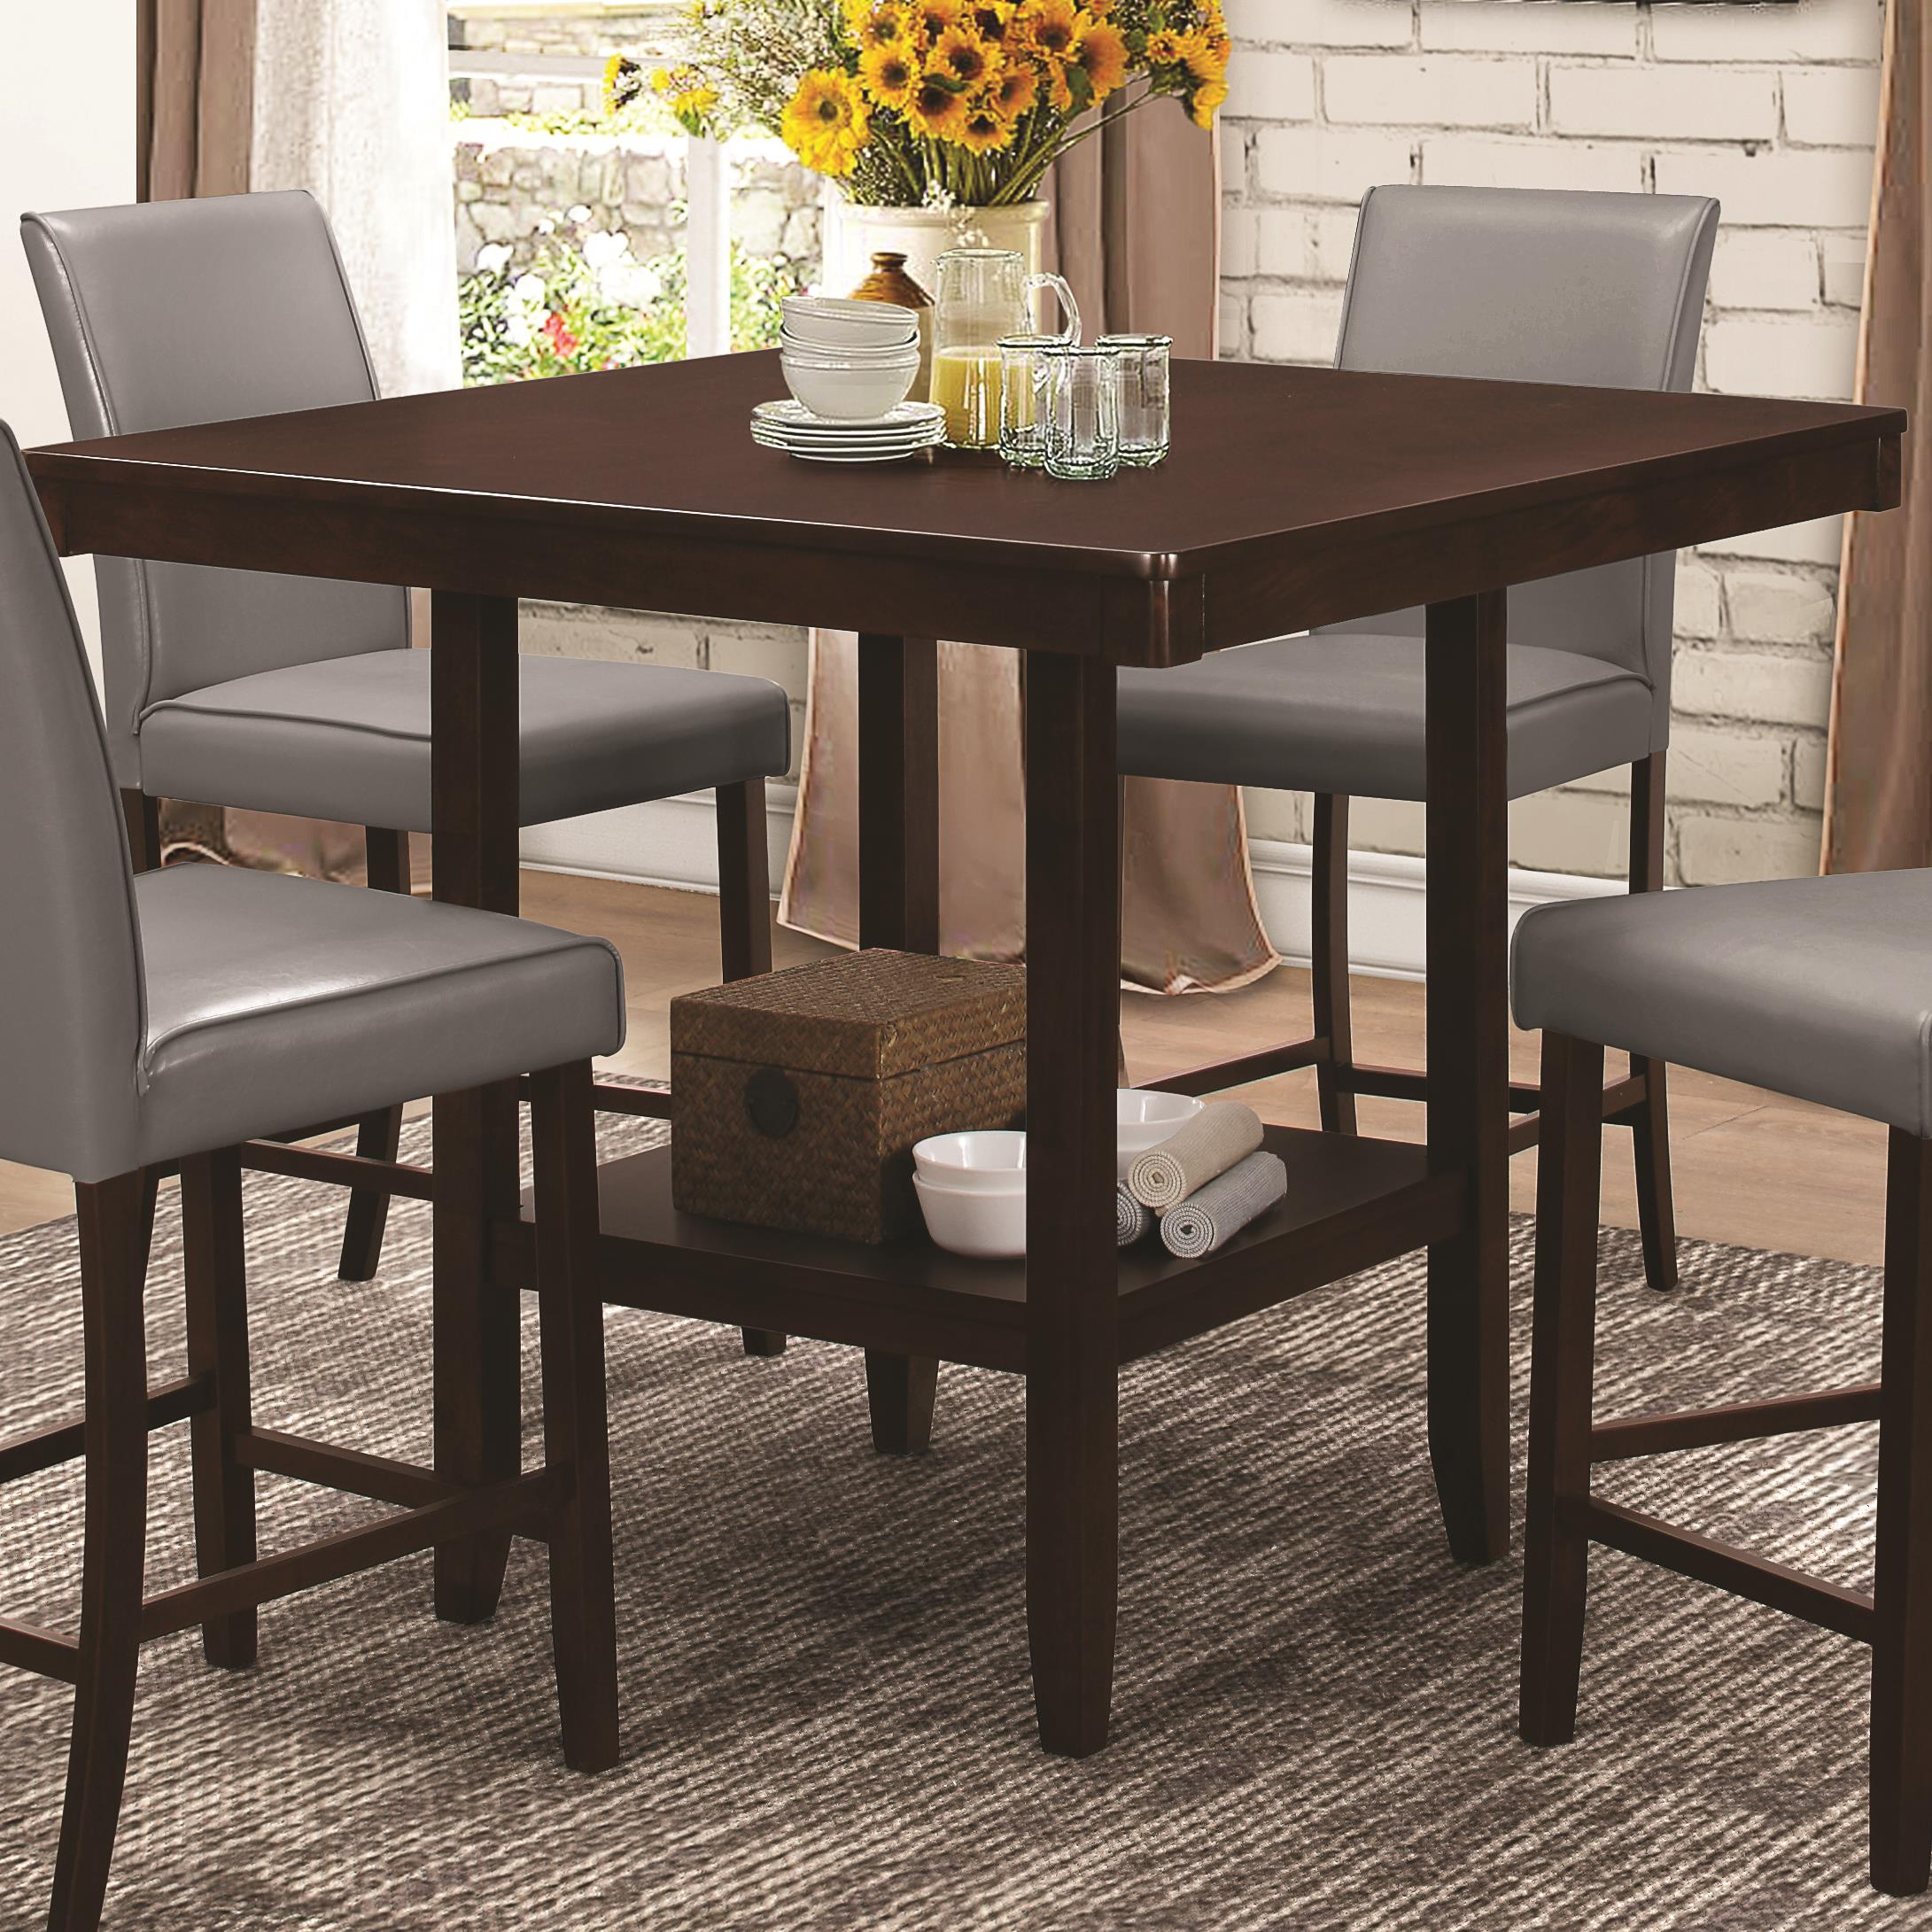 Counter Height Legs : Coaster Fattori Square Counter Height Table with Legs - Dunk & Bright ...